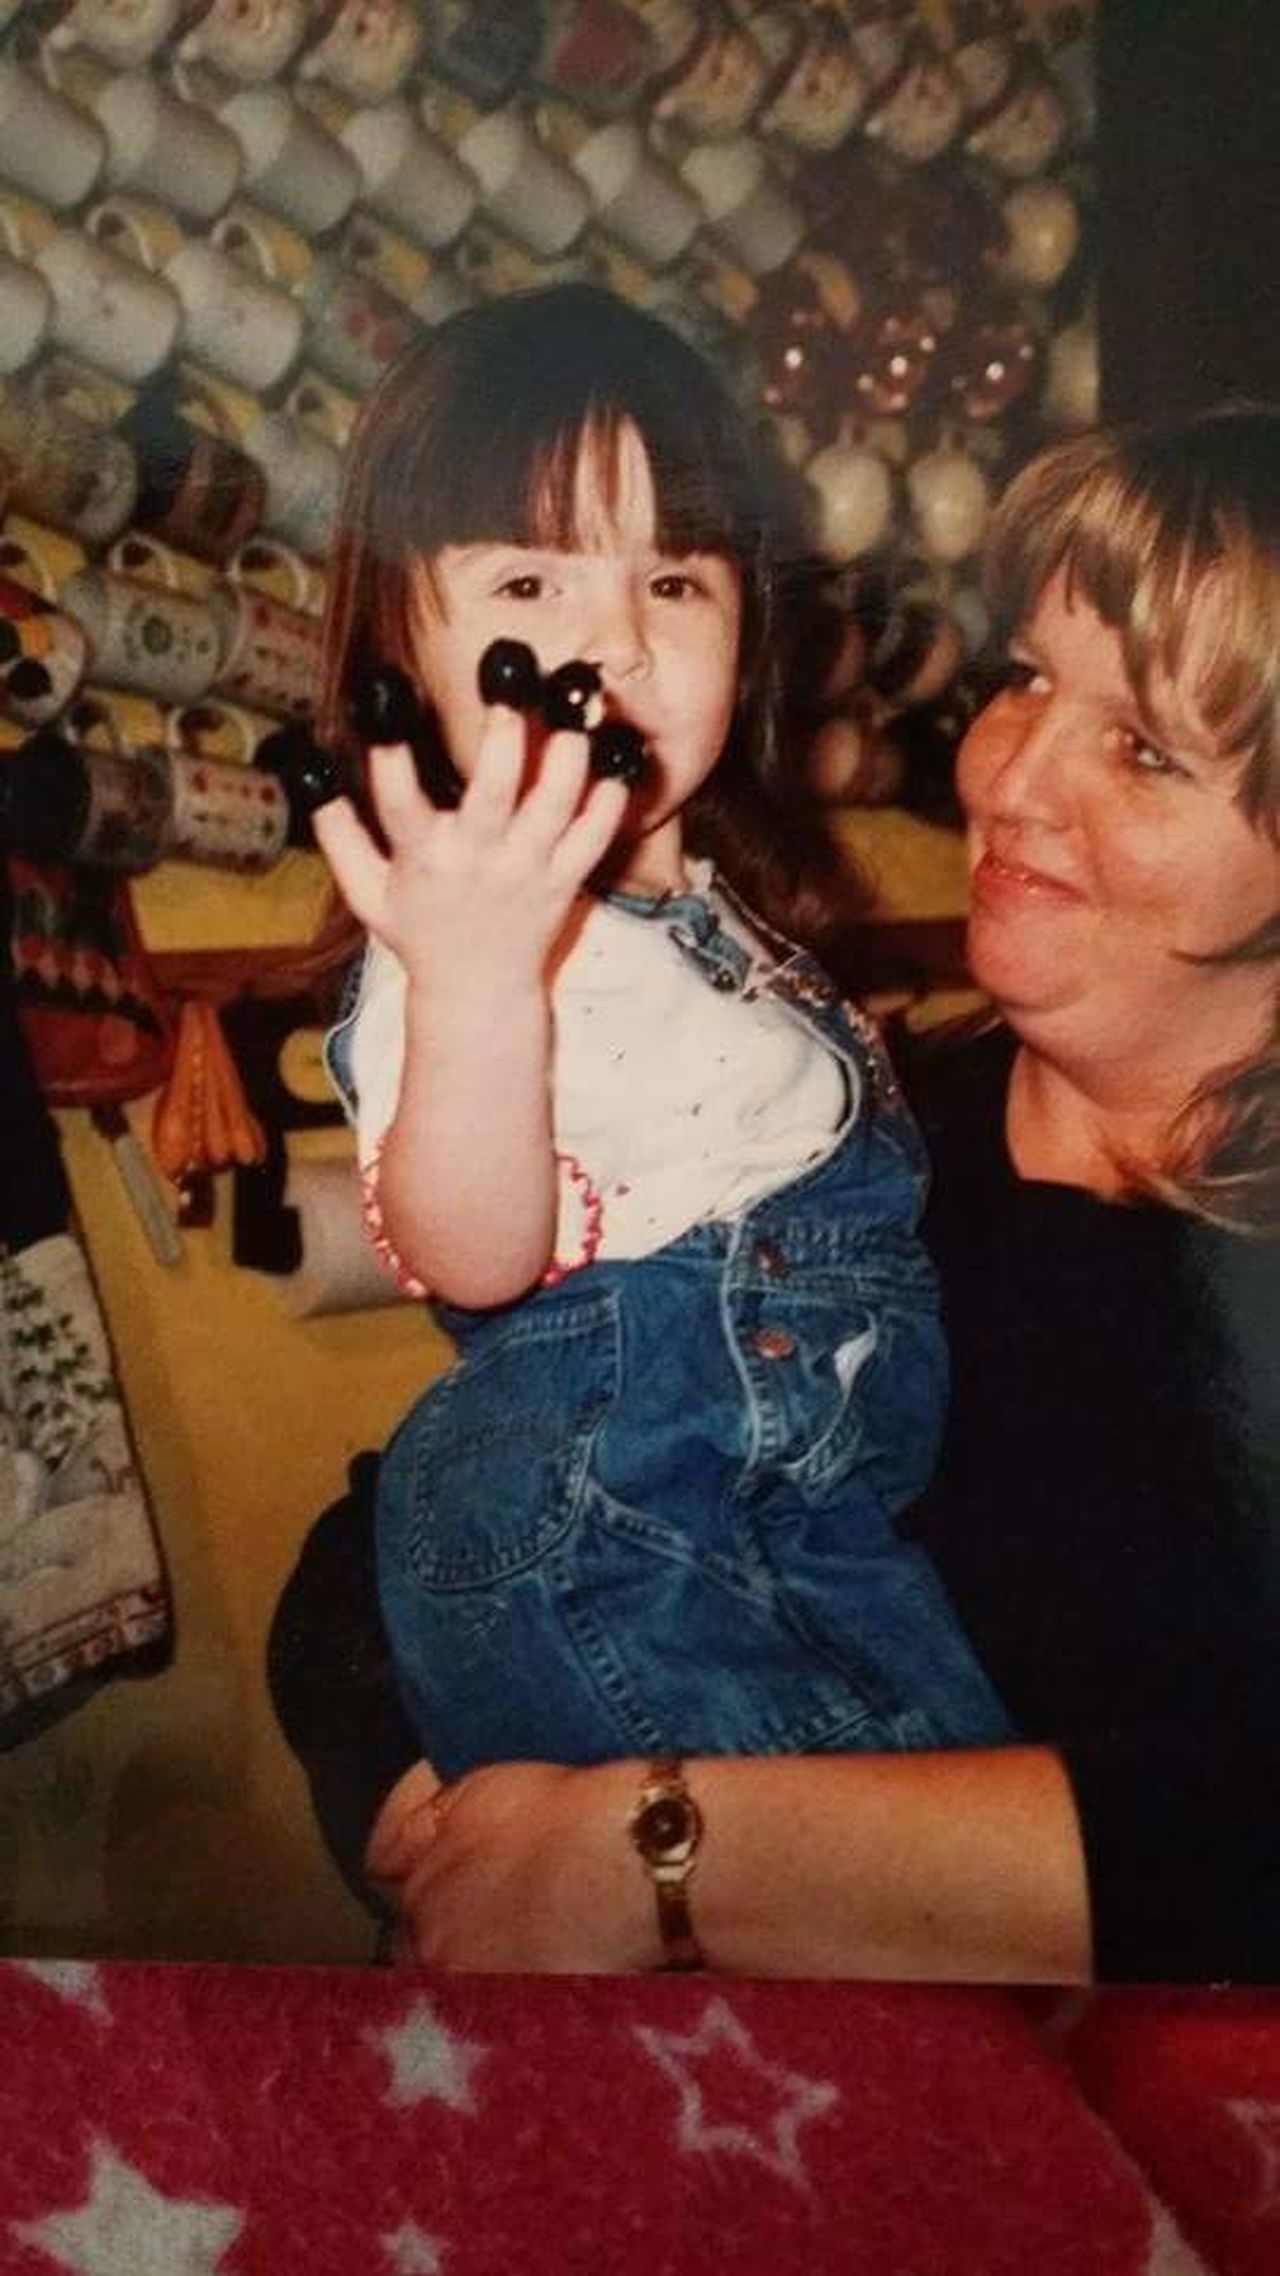 "I miss her so bad..... My Daughter she was about 3 and a half in this Picture this was at Thanksgiving .I Remember a couple days after she Died my Aunt  was trying to make me Smile and she did this, and came in the bathroom while I was taking a bath and said ""Michellie Mae!"". I said, I have a picture of Alycia with Olives on her fingers just like that, and I just started Crying again. It wasn't my aunts fault, she didn't know. But it just triggered that memory."